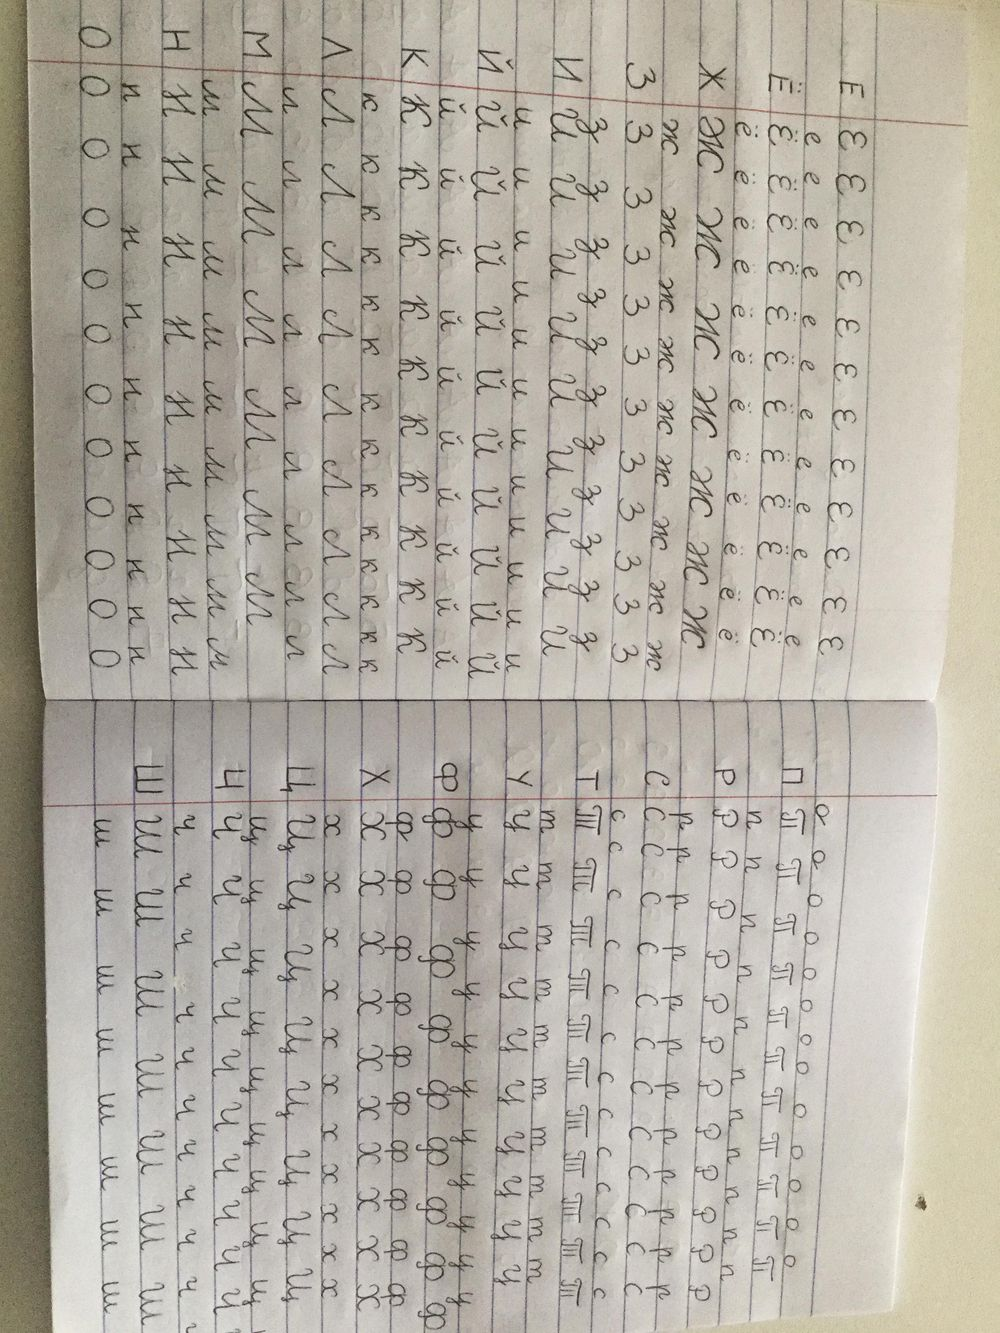 Russian alphabet - image 1 - student project